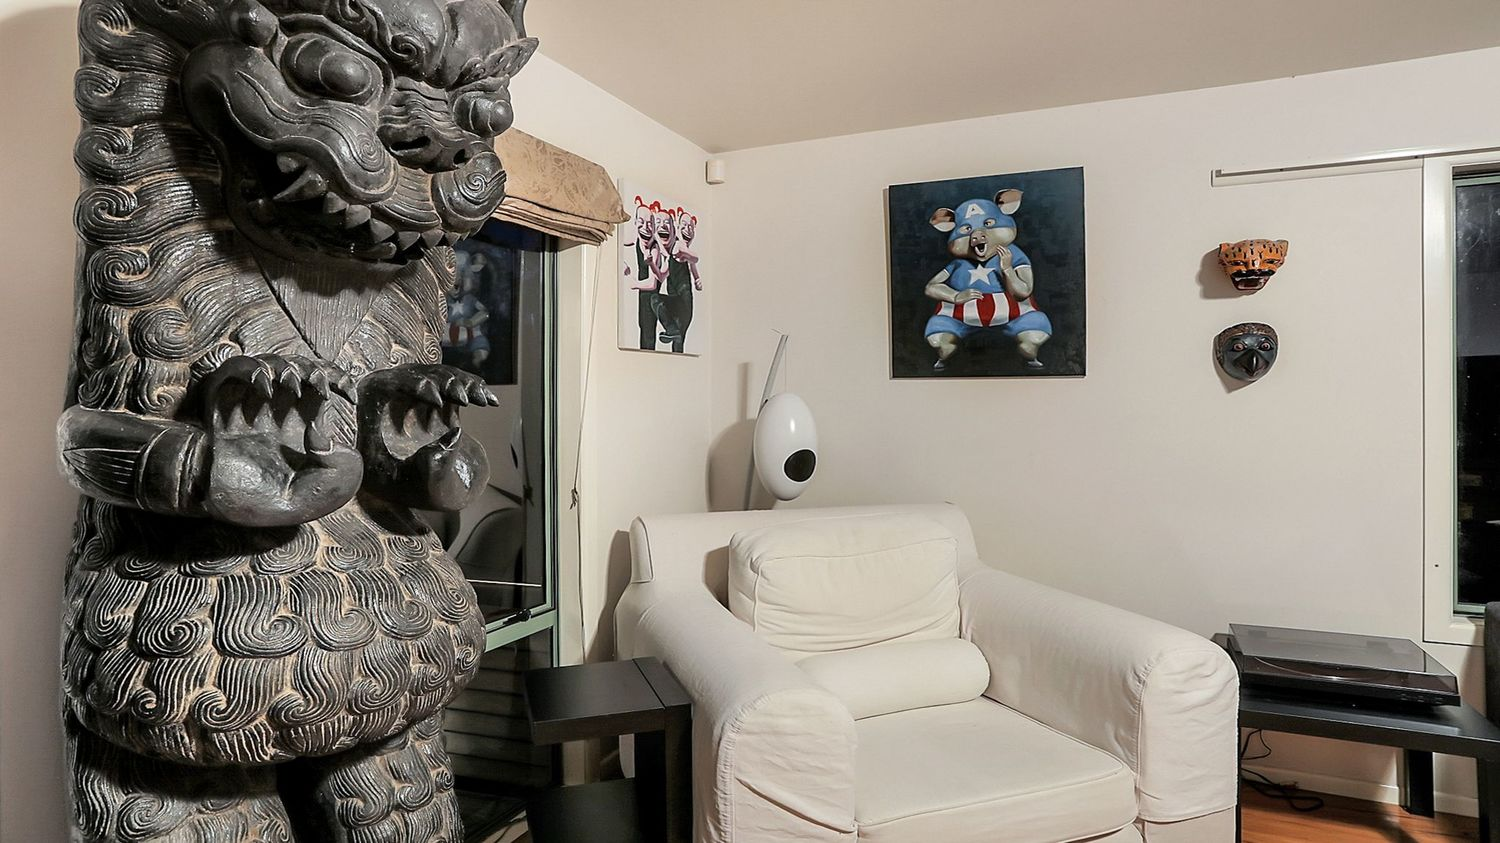 32._Seaview_with_statue_artwork_and_white_armchair_and_weird_artwork_1500x843.jpeg